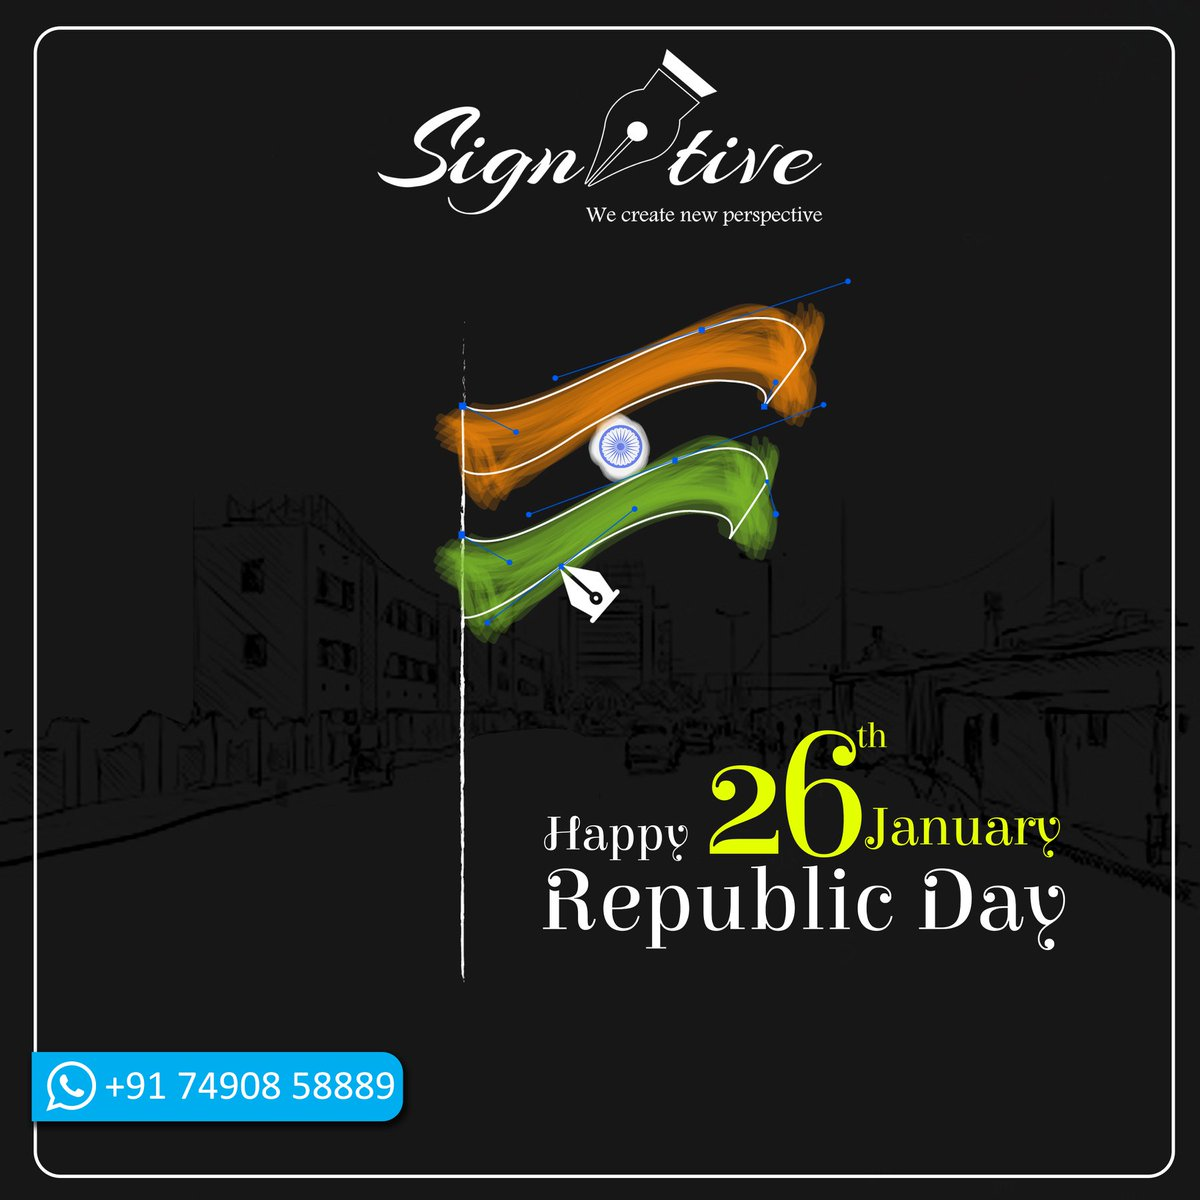 Let the flag of creativity soar high in the air..! Wishing you a Happy Republic Day  Contact : +91 7490858889  #republicday #republicday2020 #republicdayindia #branding #photography #socialmediamarketing #designing #graphics #signitive https://t.co/oICwmLdZvF